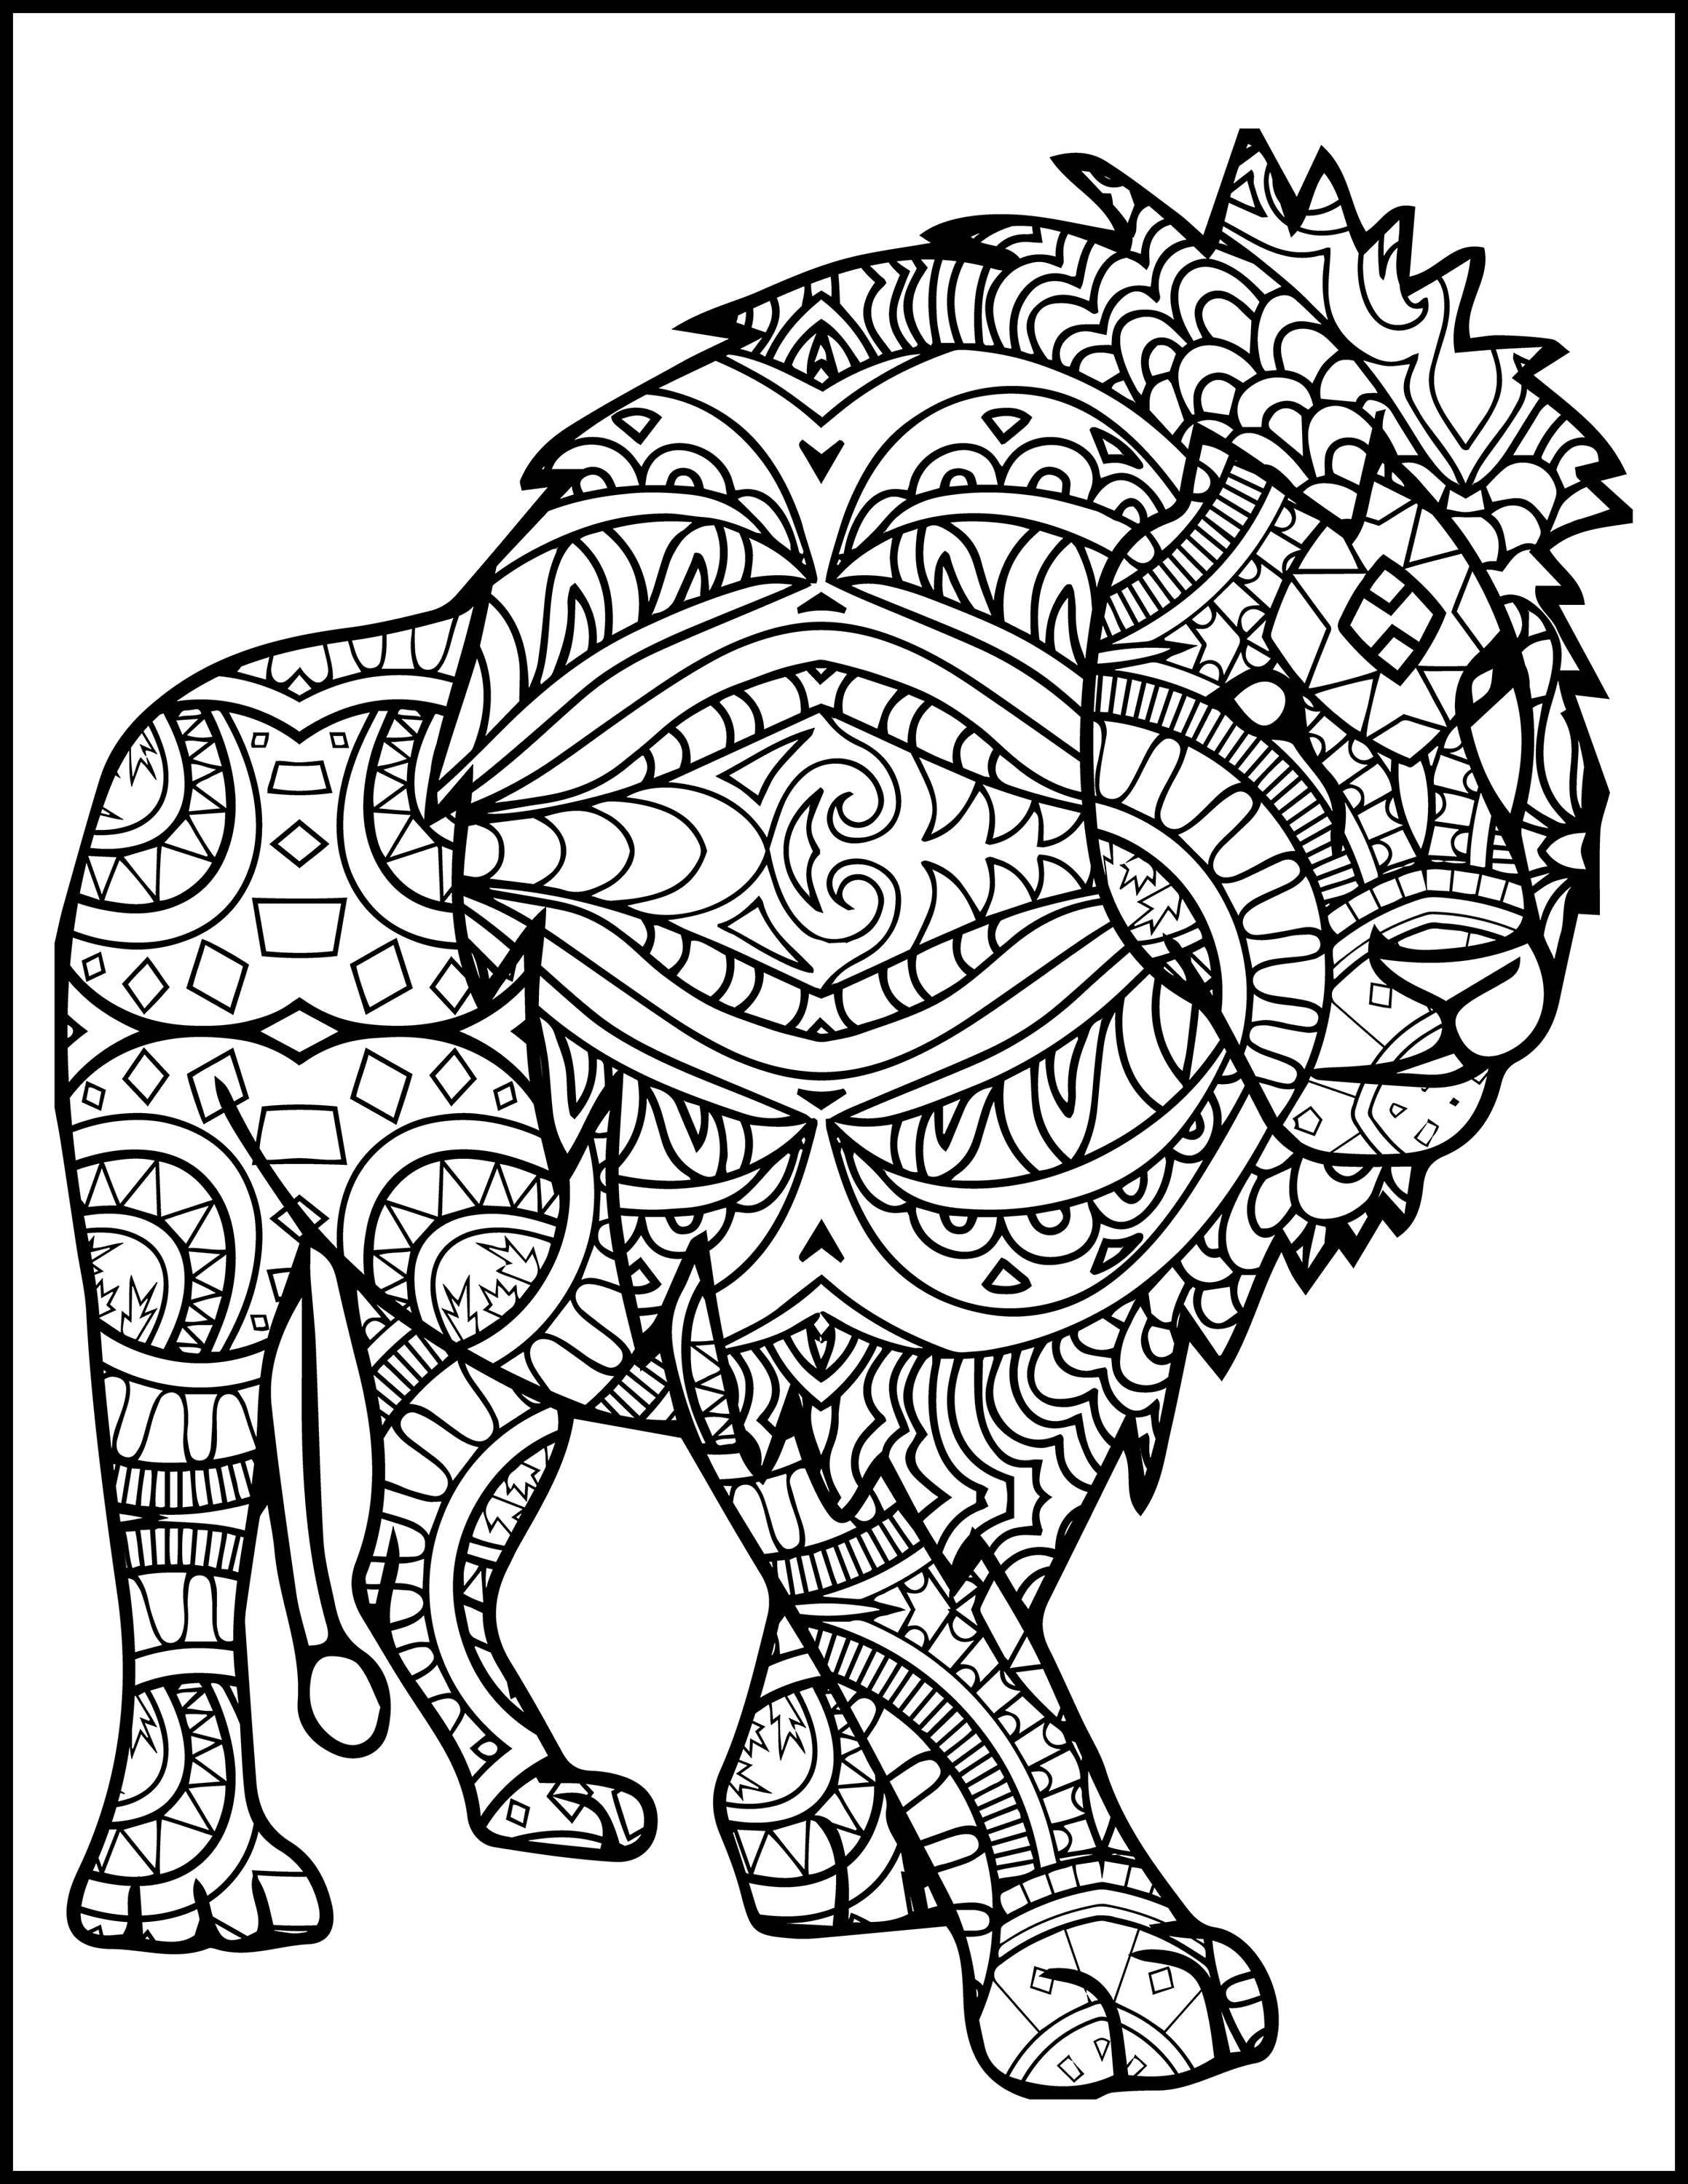 lion coloring pages for adults 3 Printable Pages for Coloring for Lion Lovers Coloring | Etsy lion coloring pages for adults